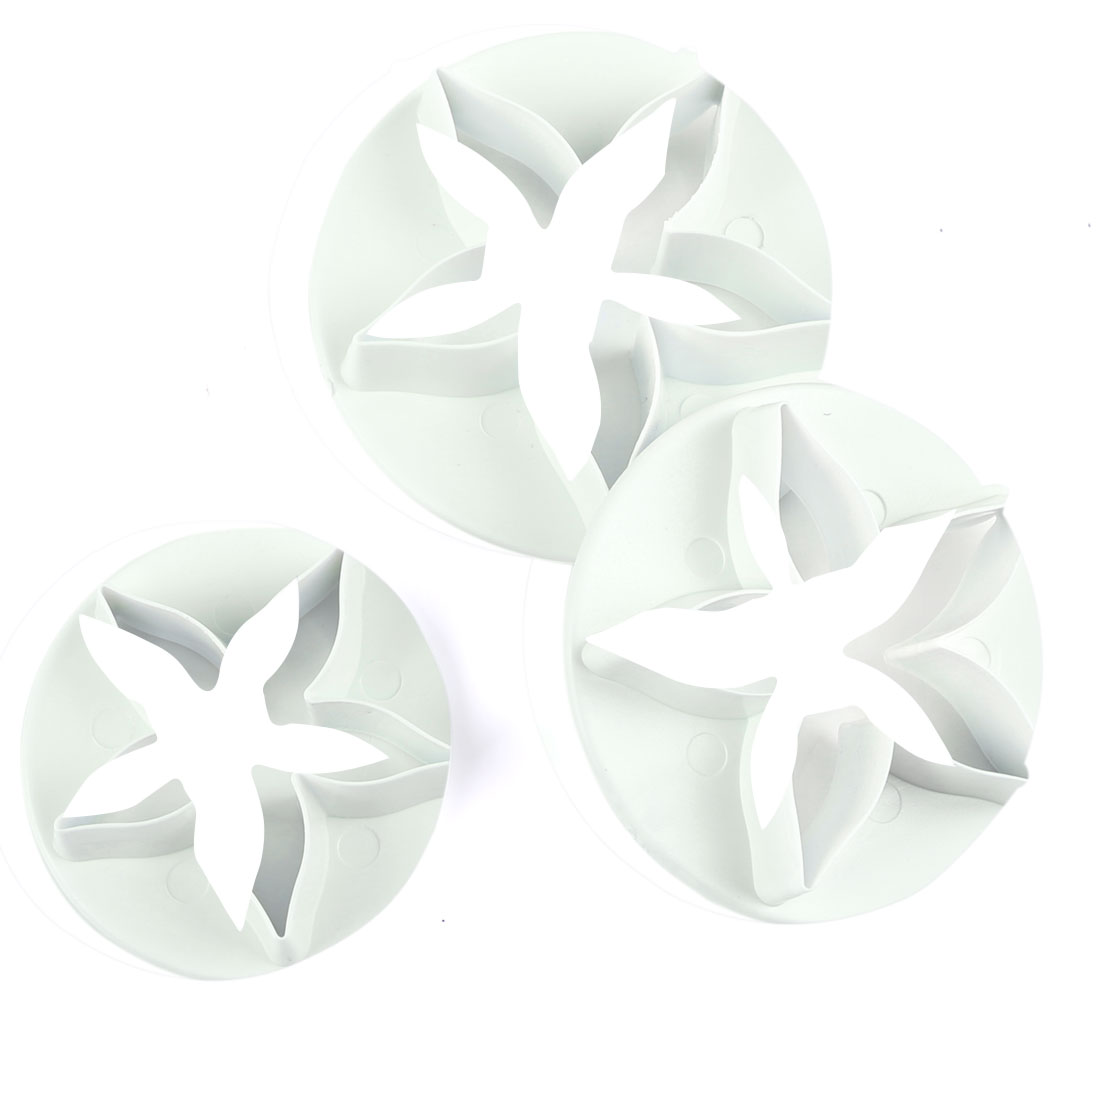 3PCS White Star Shape Cake Decorating Molds Calyx Flower Cutters DIY Tool